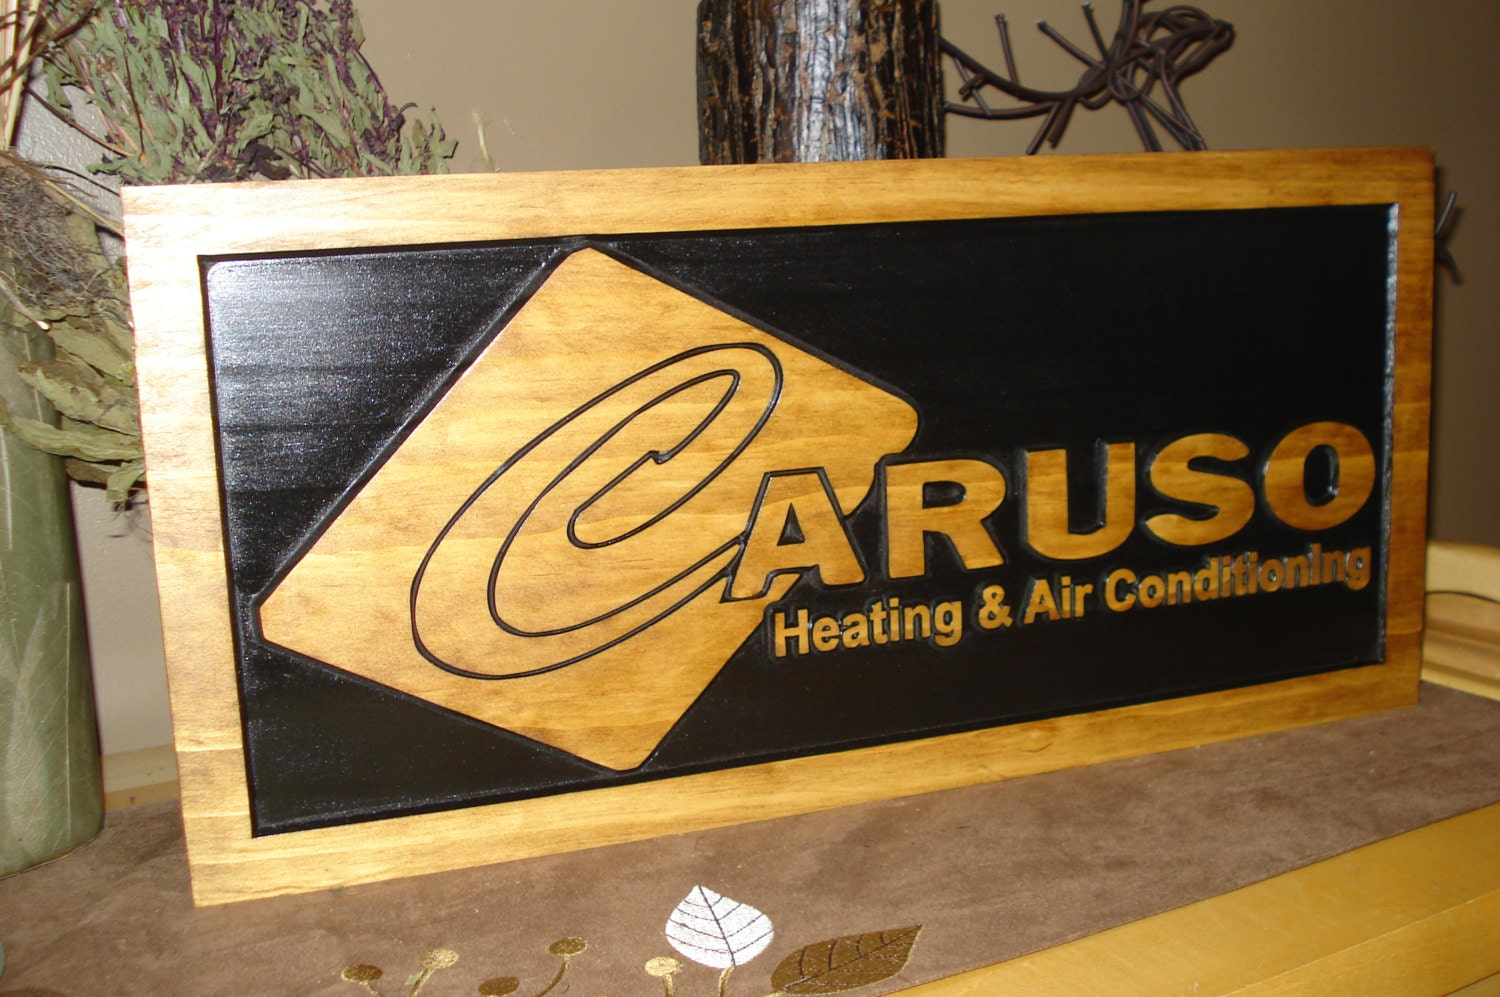 Wood carved signs craft show displays business logos for How to display wood signs at craft show